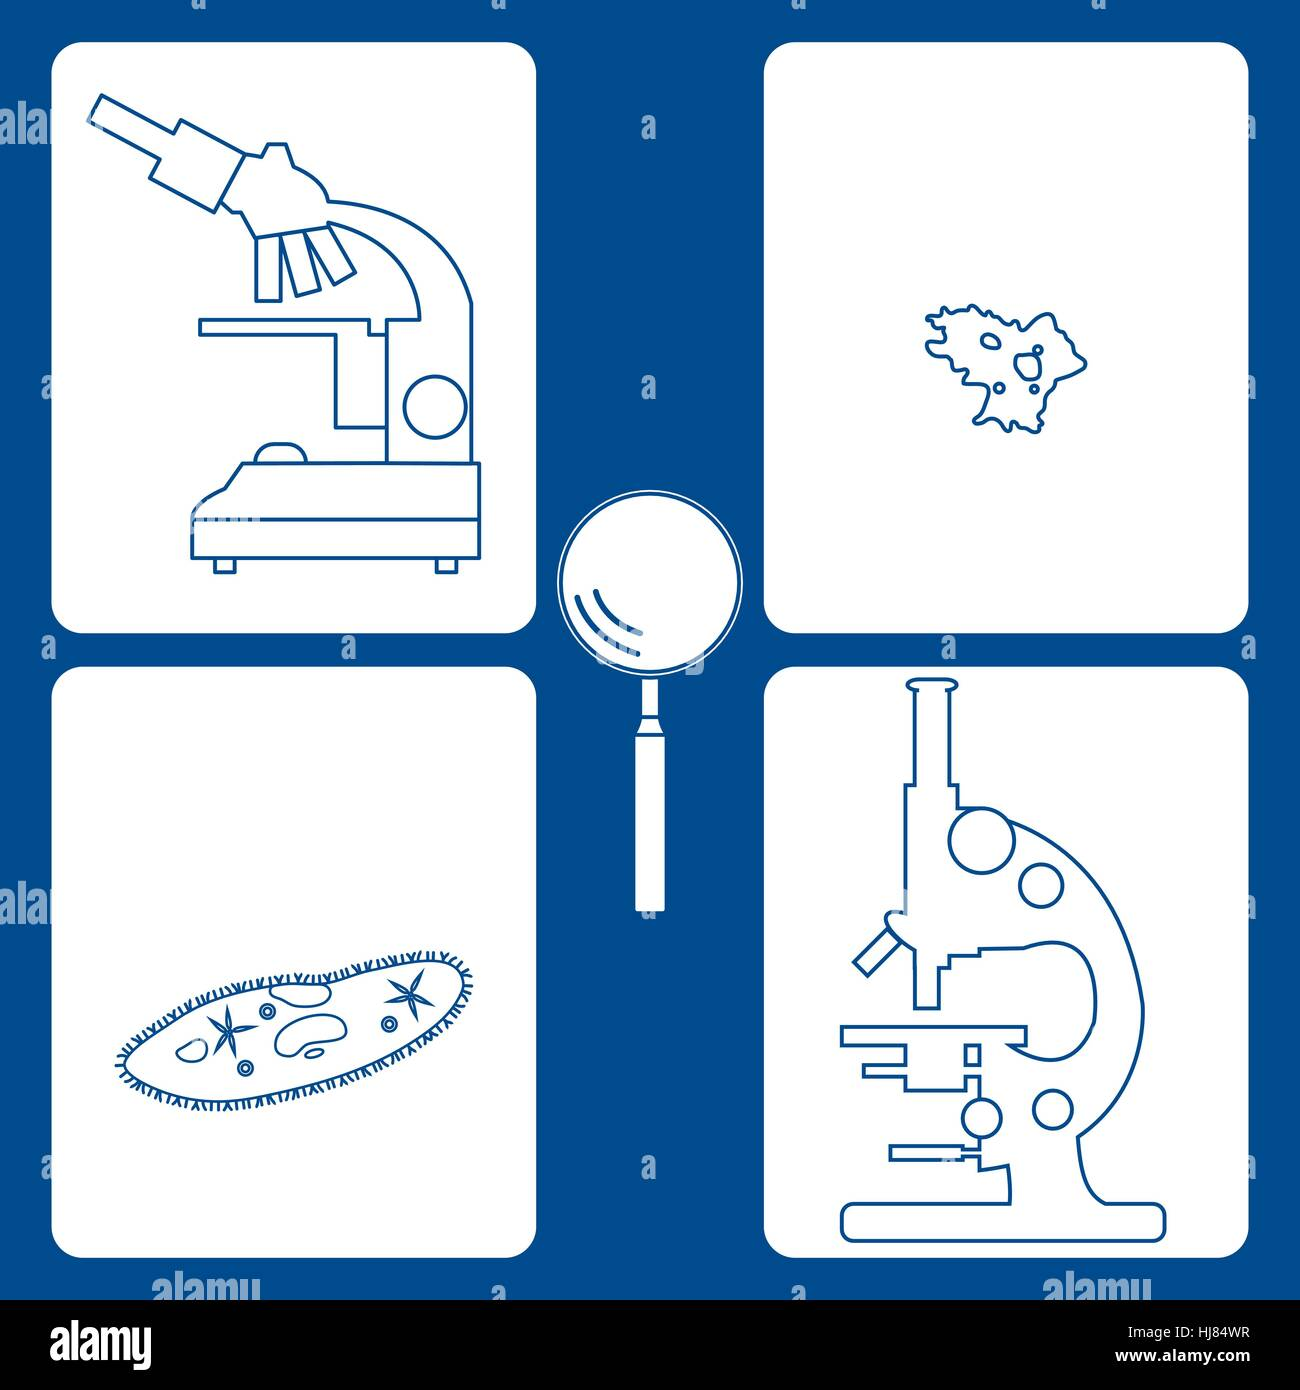 Stylized icons of microscopes, magnifier, amoeba, ciliate-slipper. Magnifying device sign. Laboratory equipment - Stock Vector